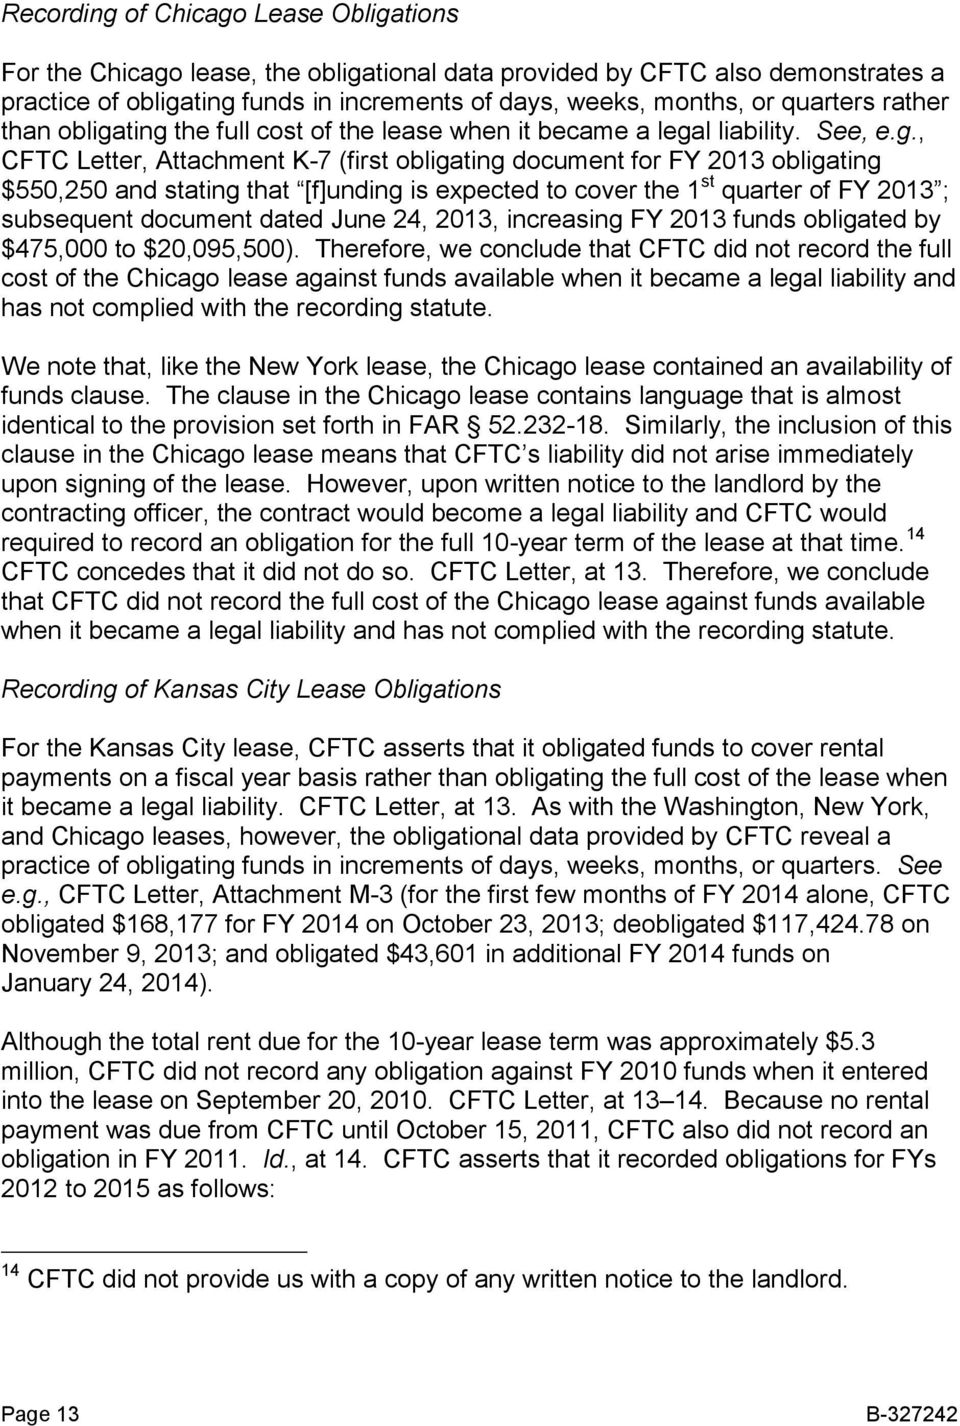 ting the full cost of the lease when it became a legal liability. See, e.g., CFTC Letter, Attachment K-7 (first obligating document for FY 2013 obligating $550,250 and stating that [f]unding is